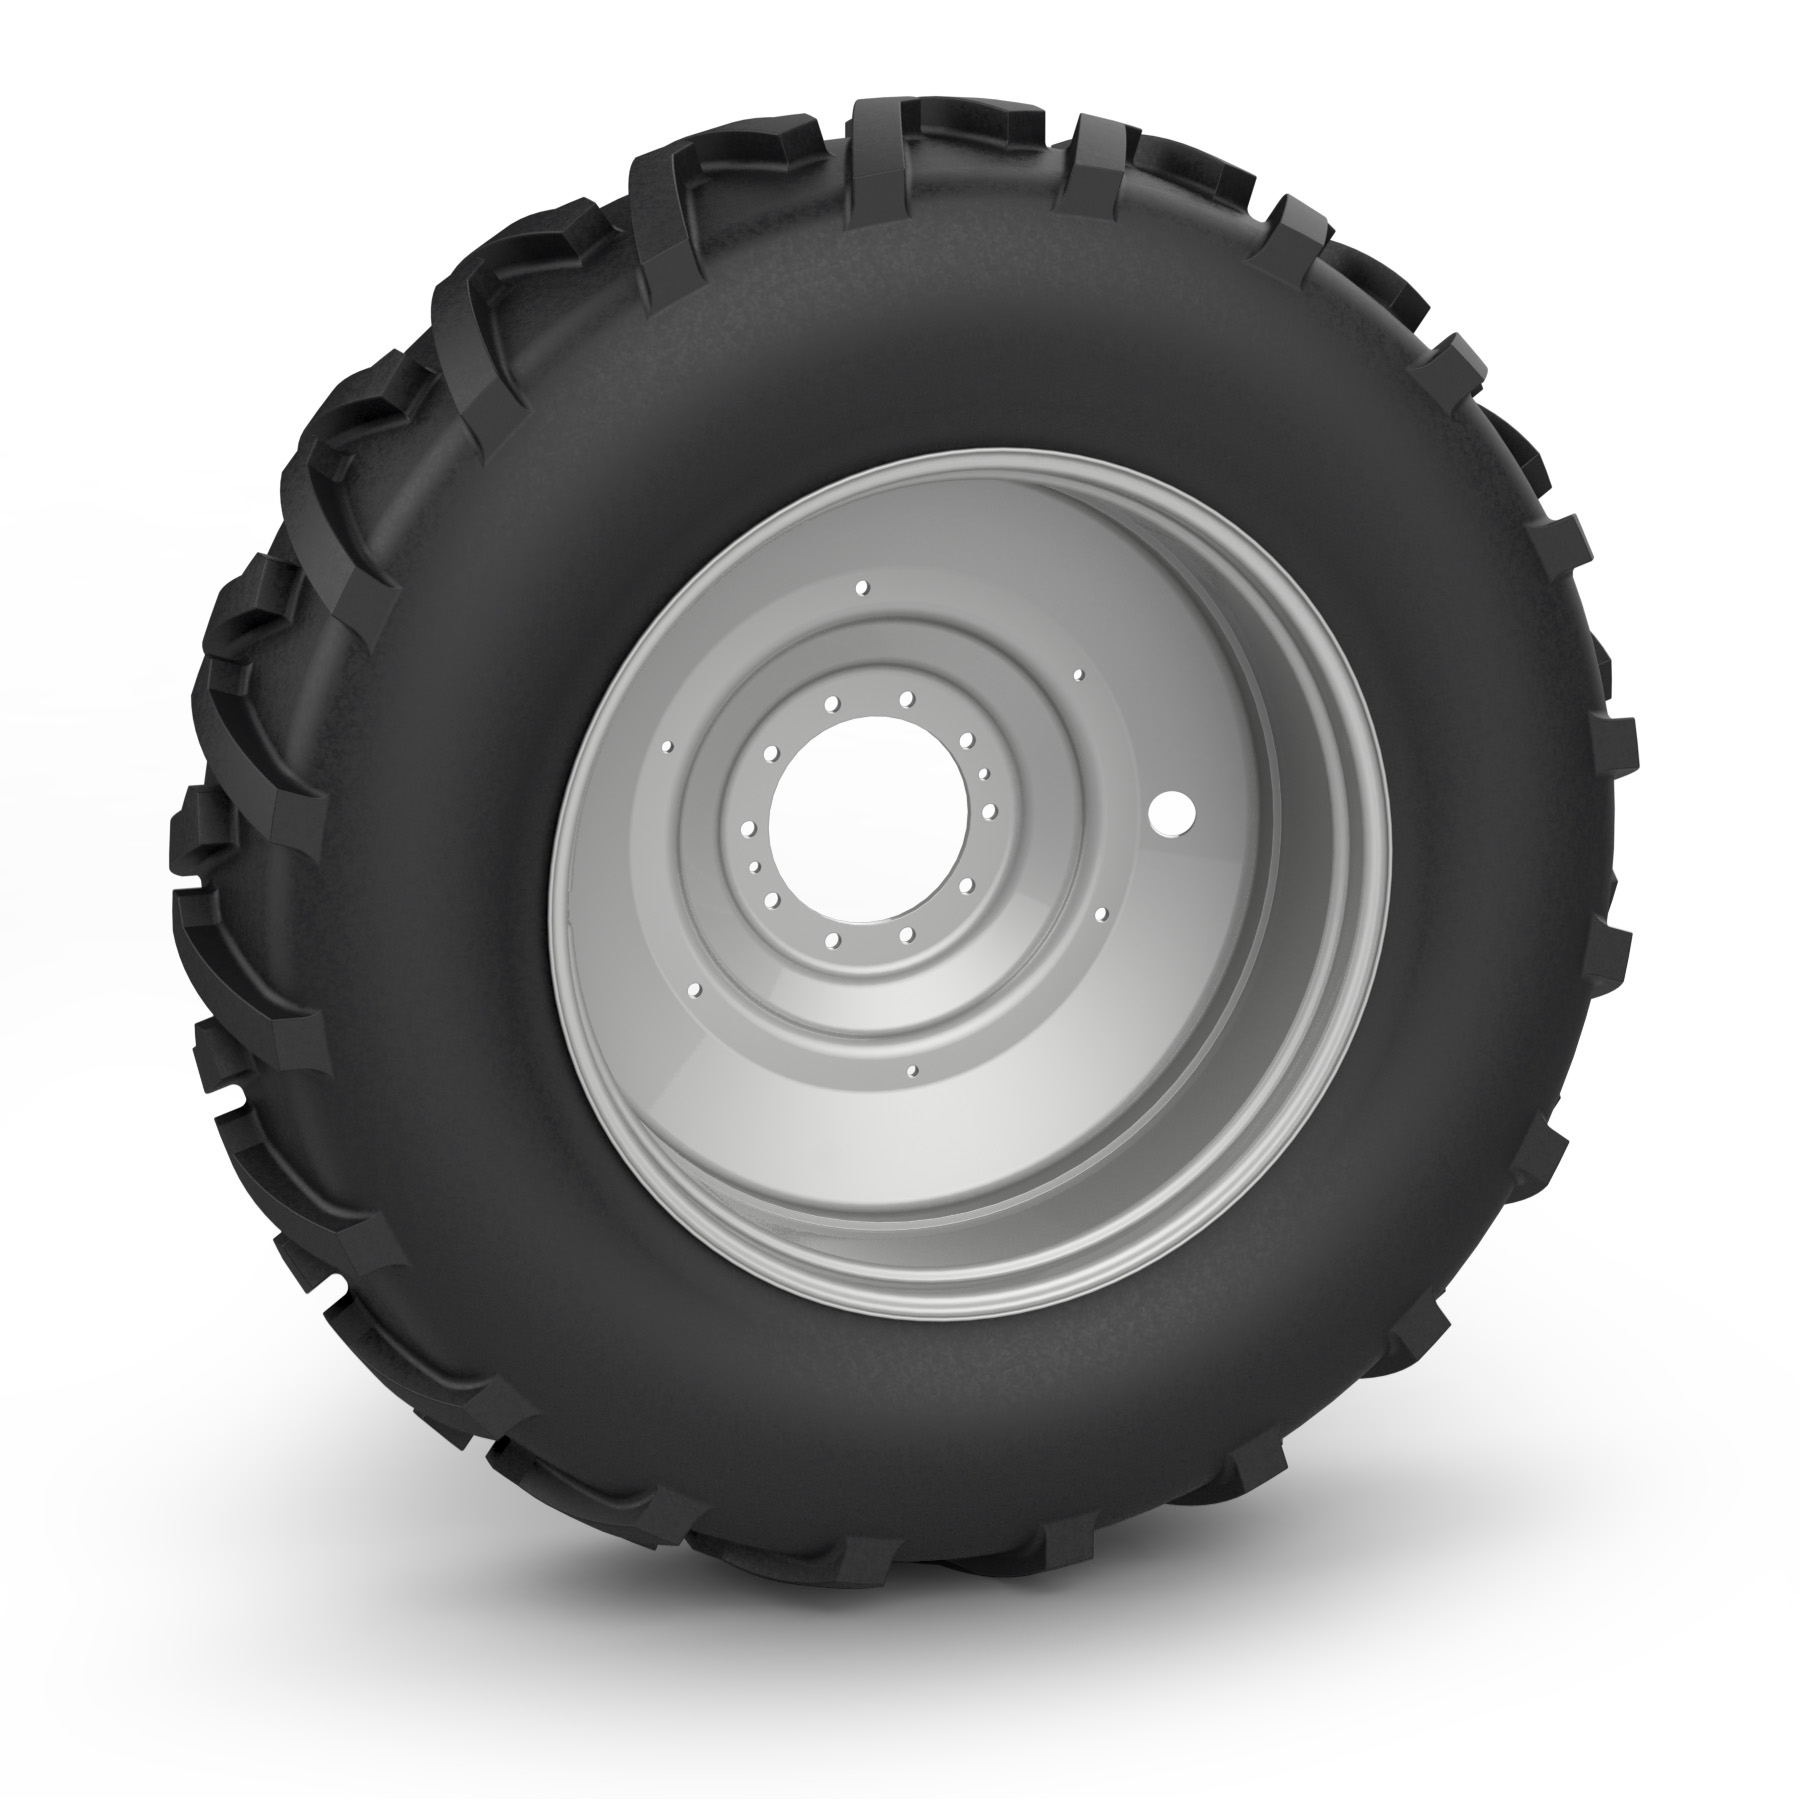 Tractor Wheel Rims : Tractor wheels and rims bing images